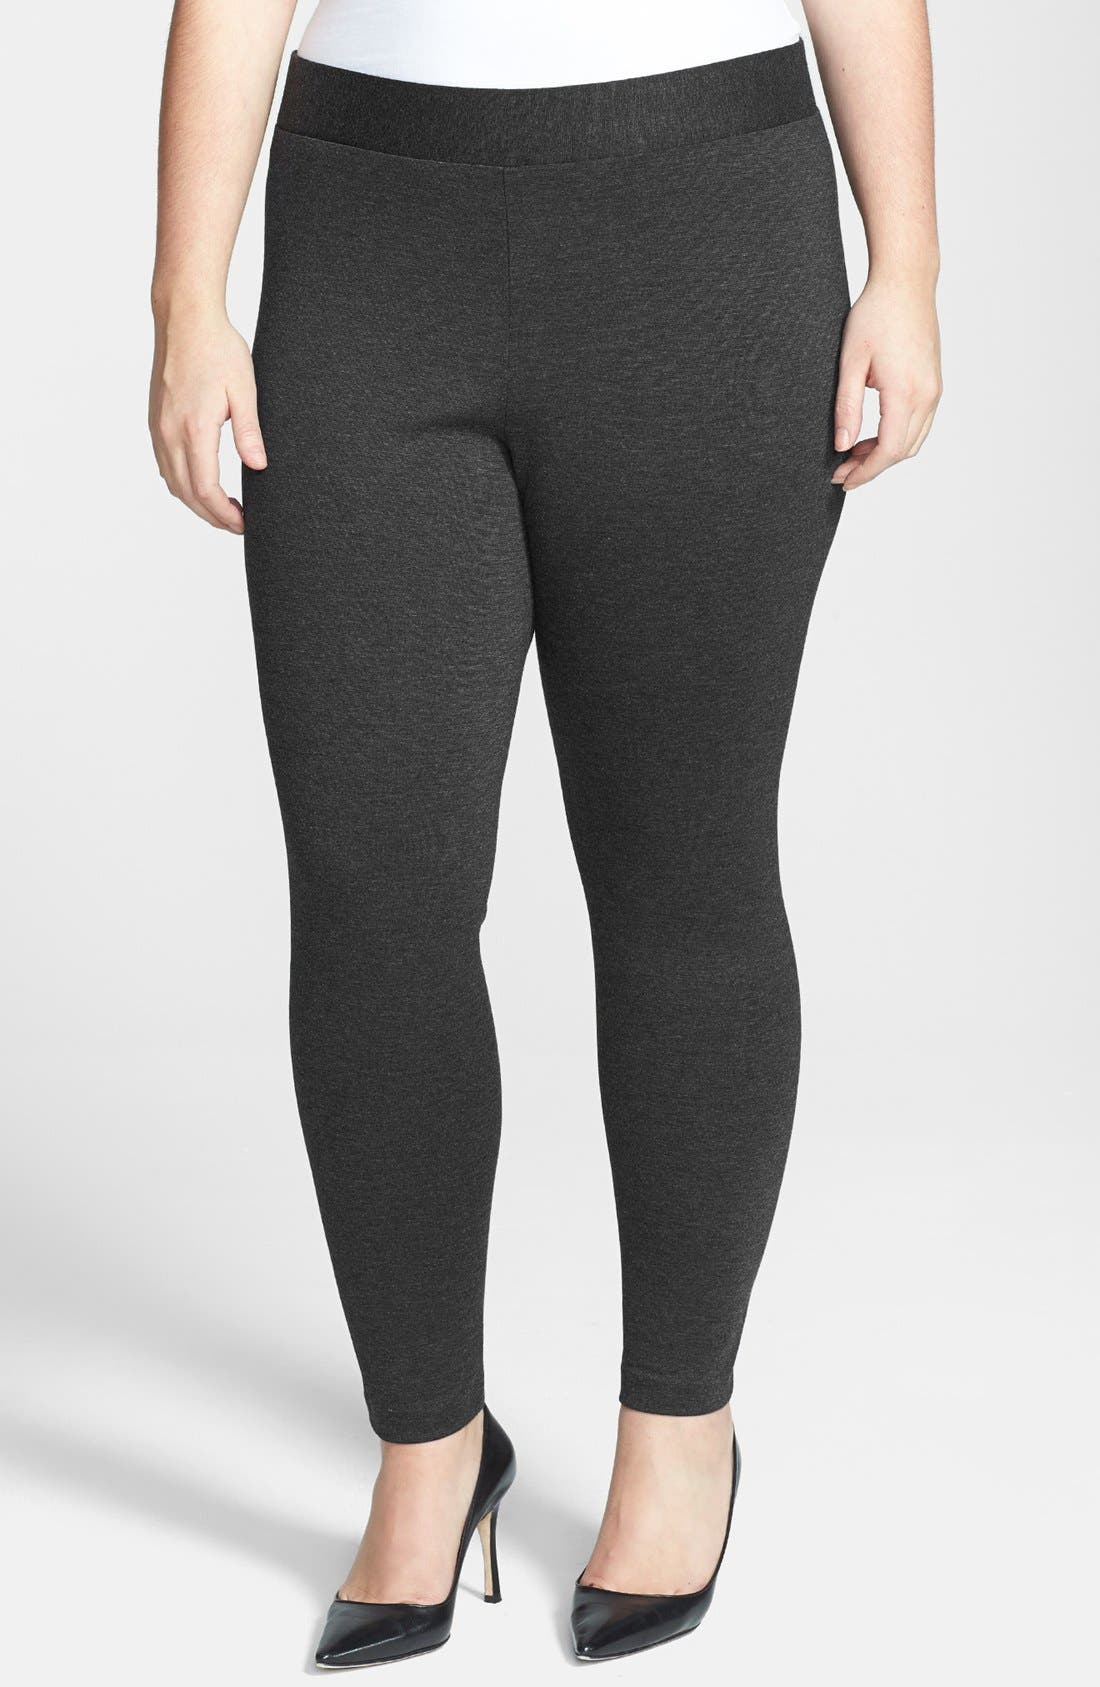 TWO BY VINCE CAMUTO High Rise Leggings in Dark Heather Grey